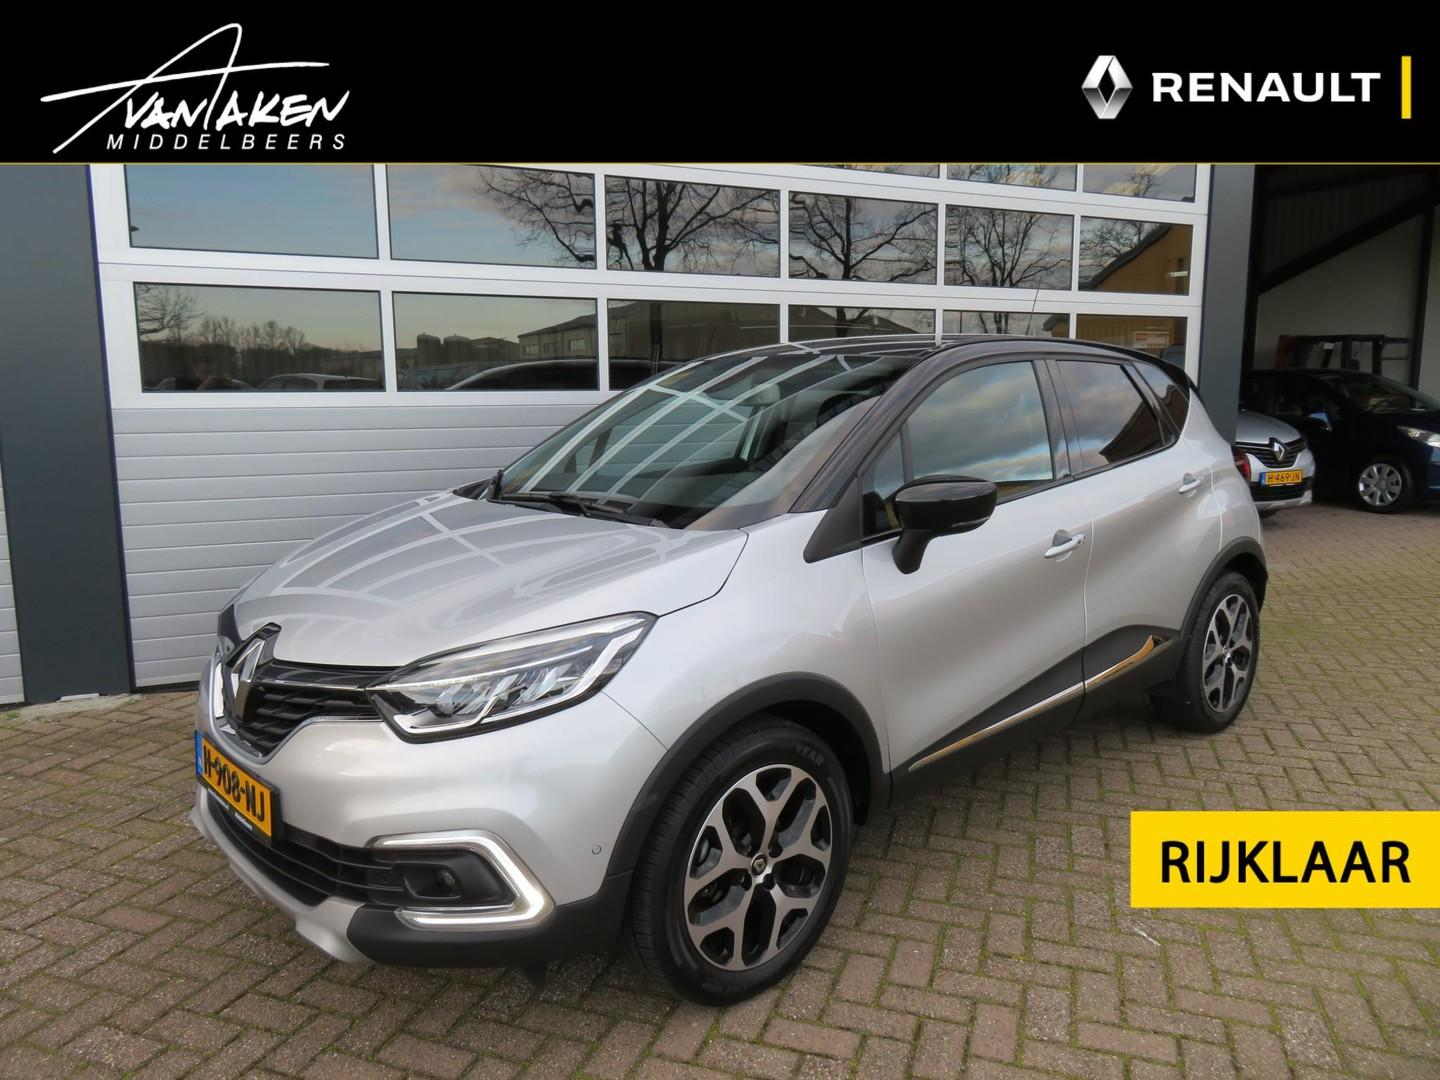 Renault Captur Tce 150 edc automaat intens, easy life pack